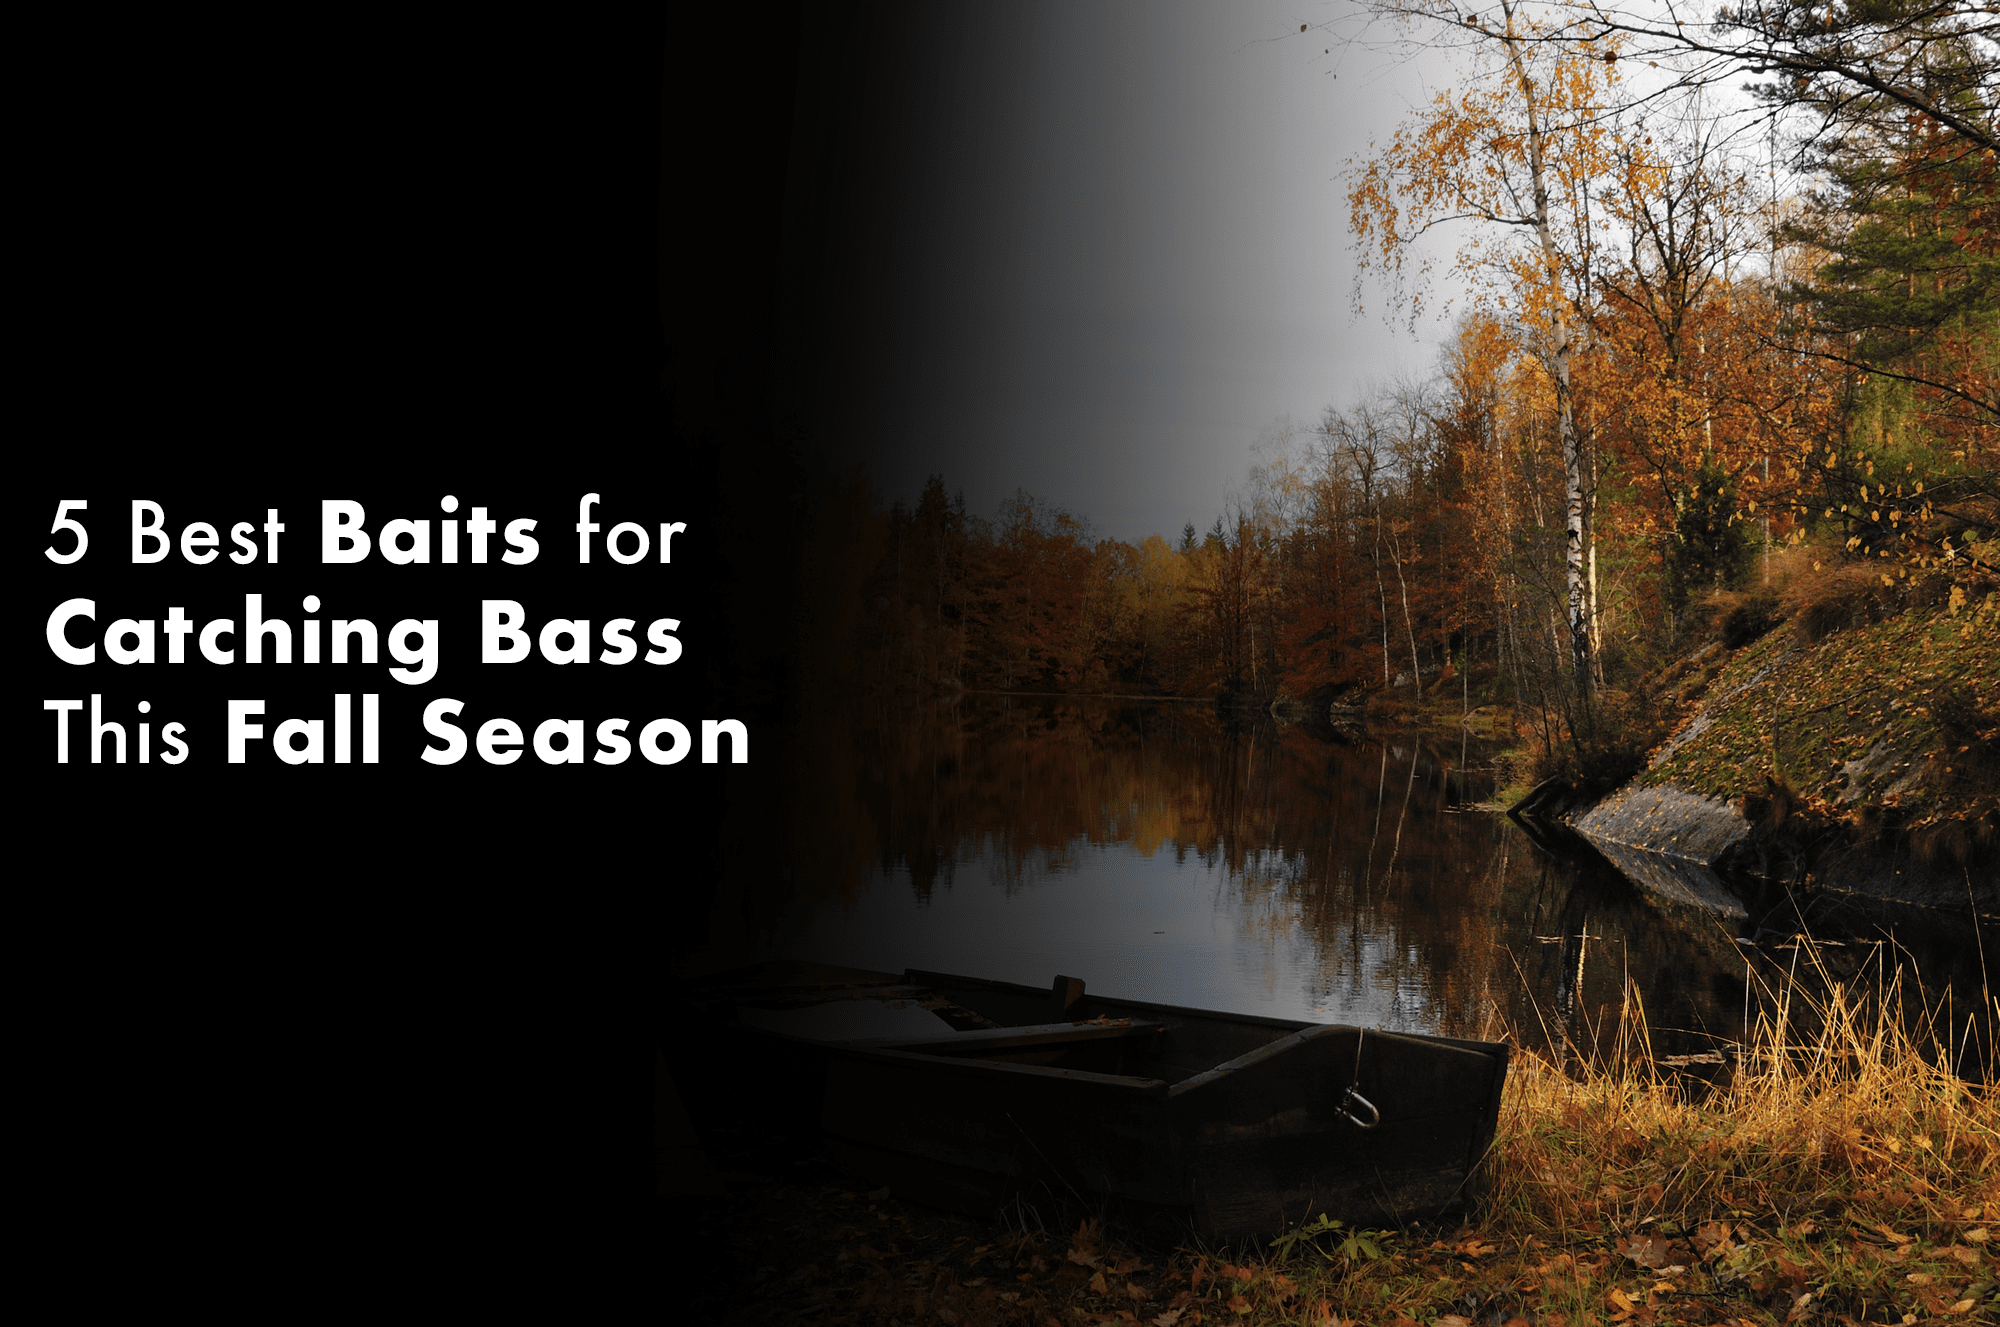 5 Best Baits for Catching Bass This Fall Season